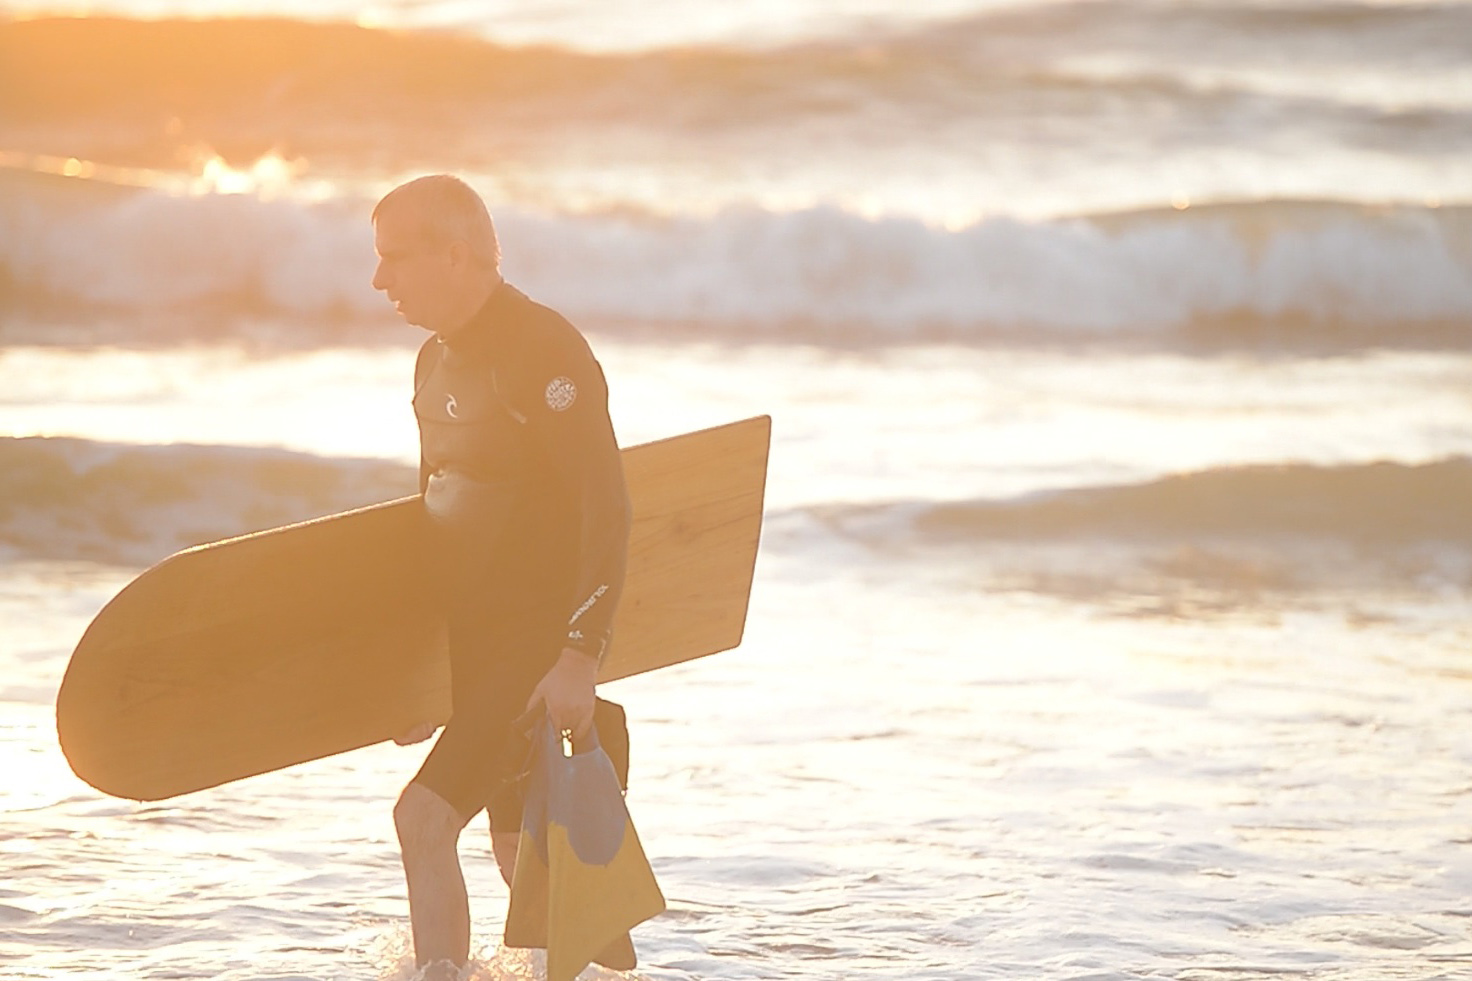 Off campus, Frank Lattanzio, PhD, Associate Professor of Physiological Sciences, can be found surfing early-morning waves — but not in a traditional way. Learn more in our Digital Magazine.